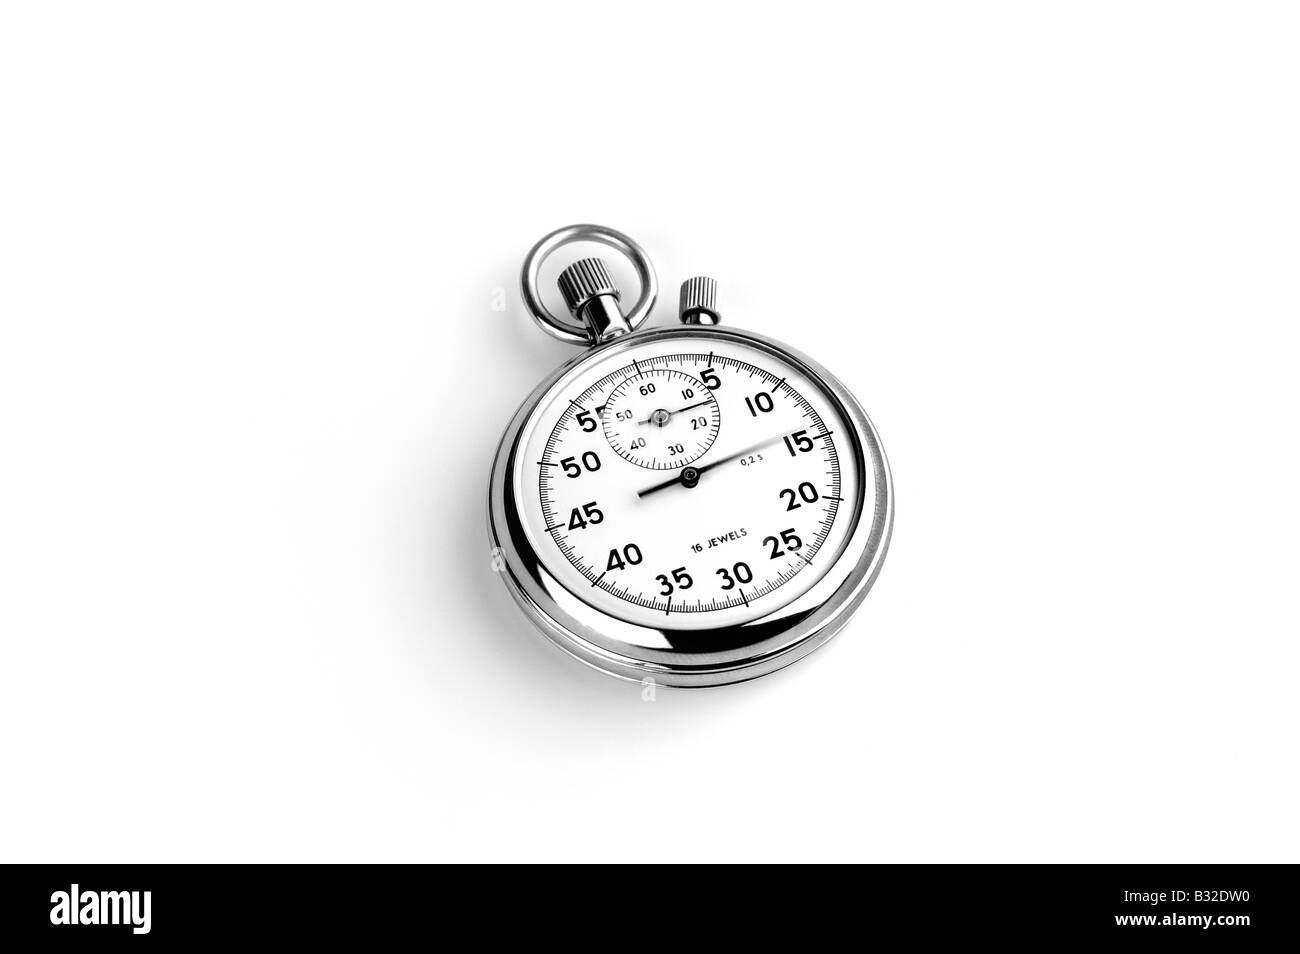 CUT OUT OF AN ANALOGUE STOP WATCH - Stock Image